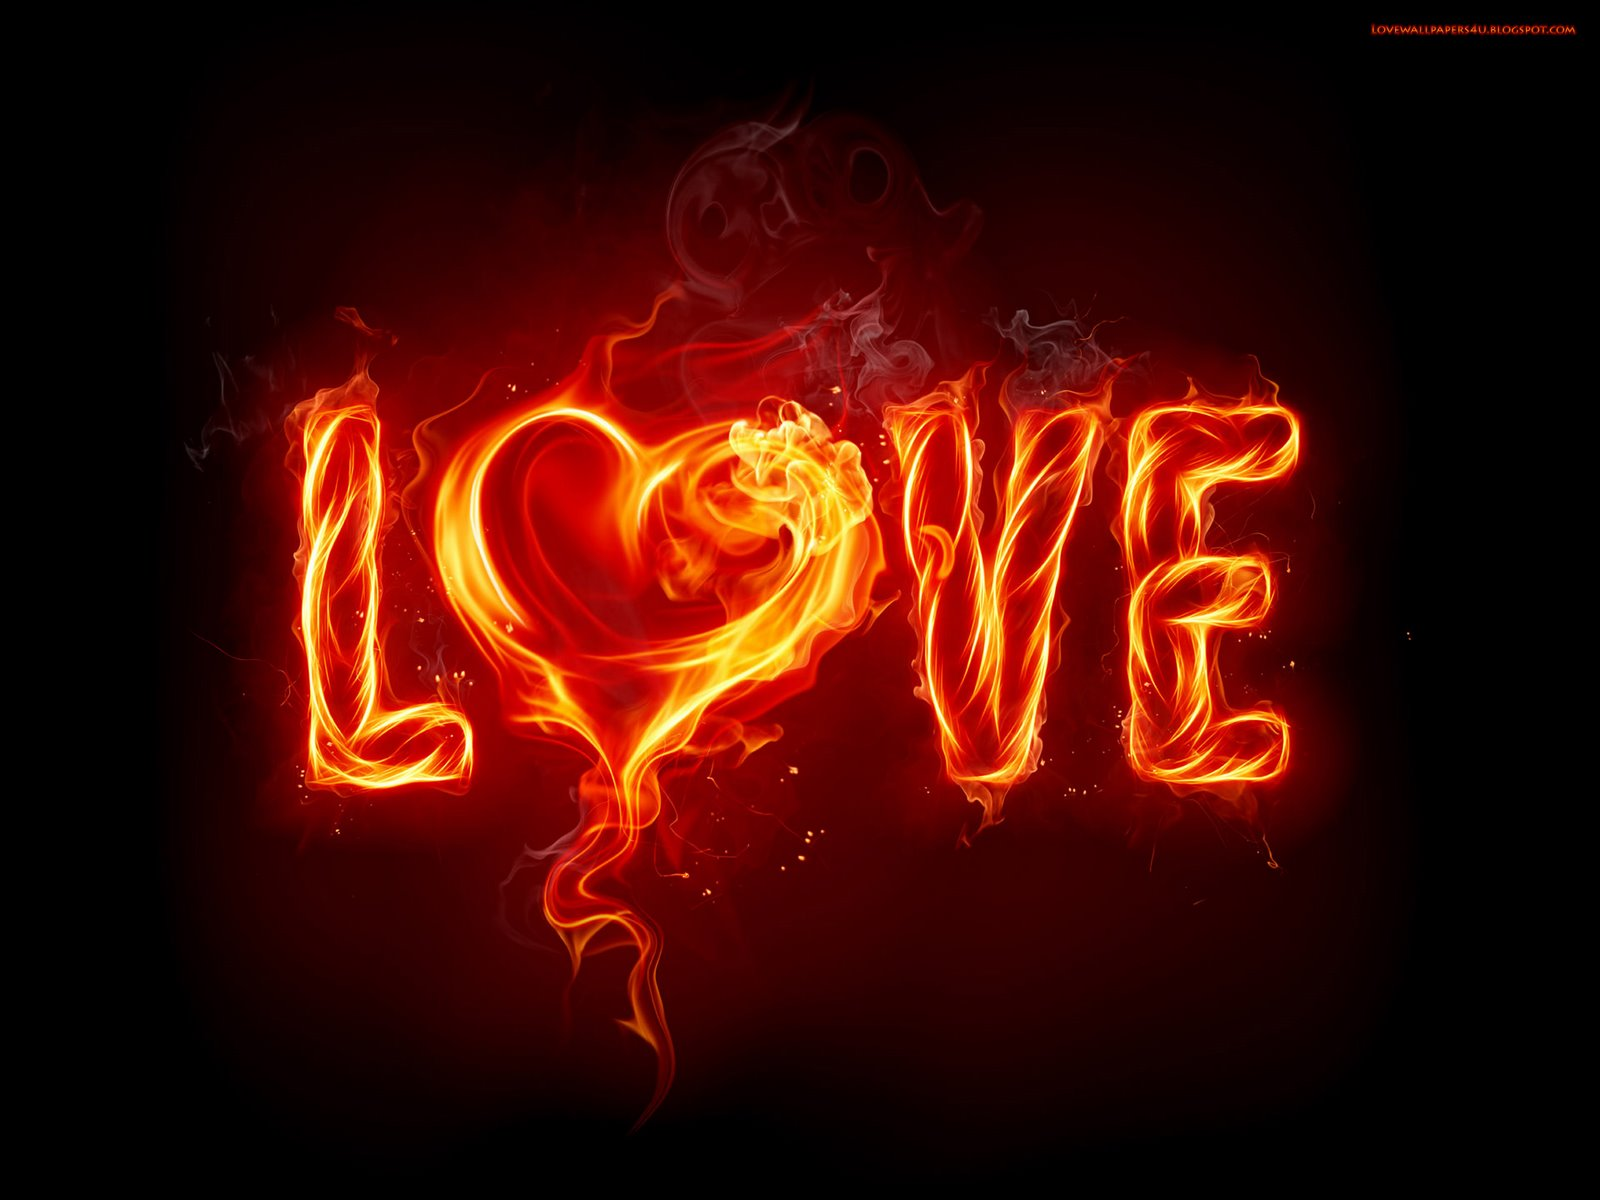 Love Wallpapers And Backgrounds : amazing love wallpapers Amazing Wallpapers